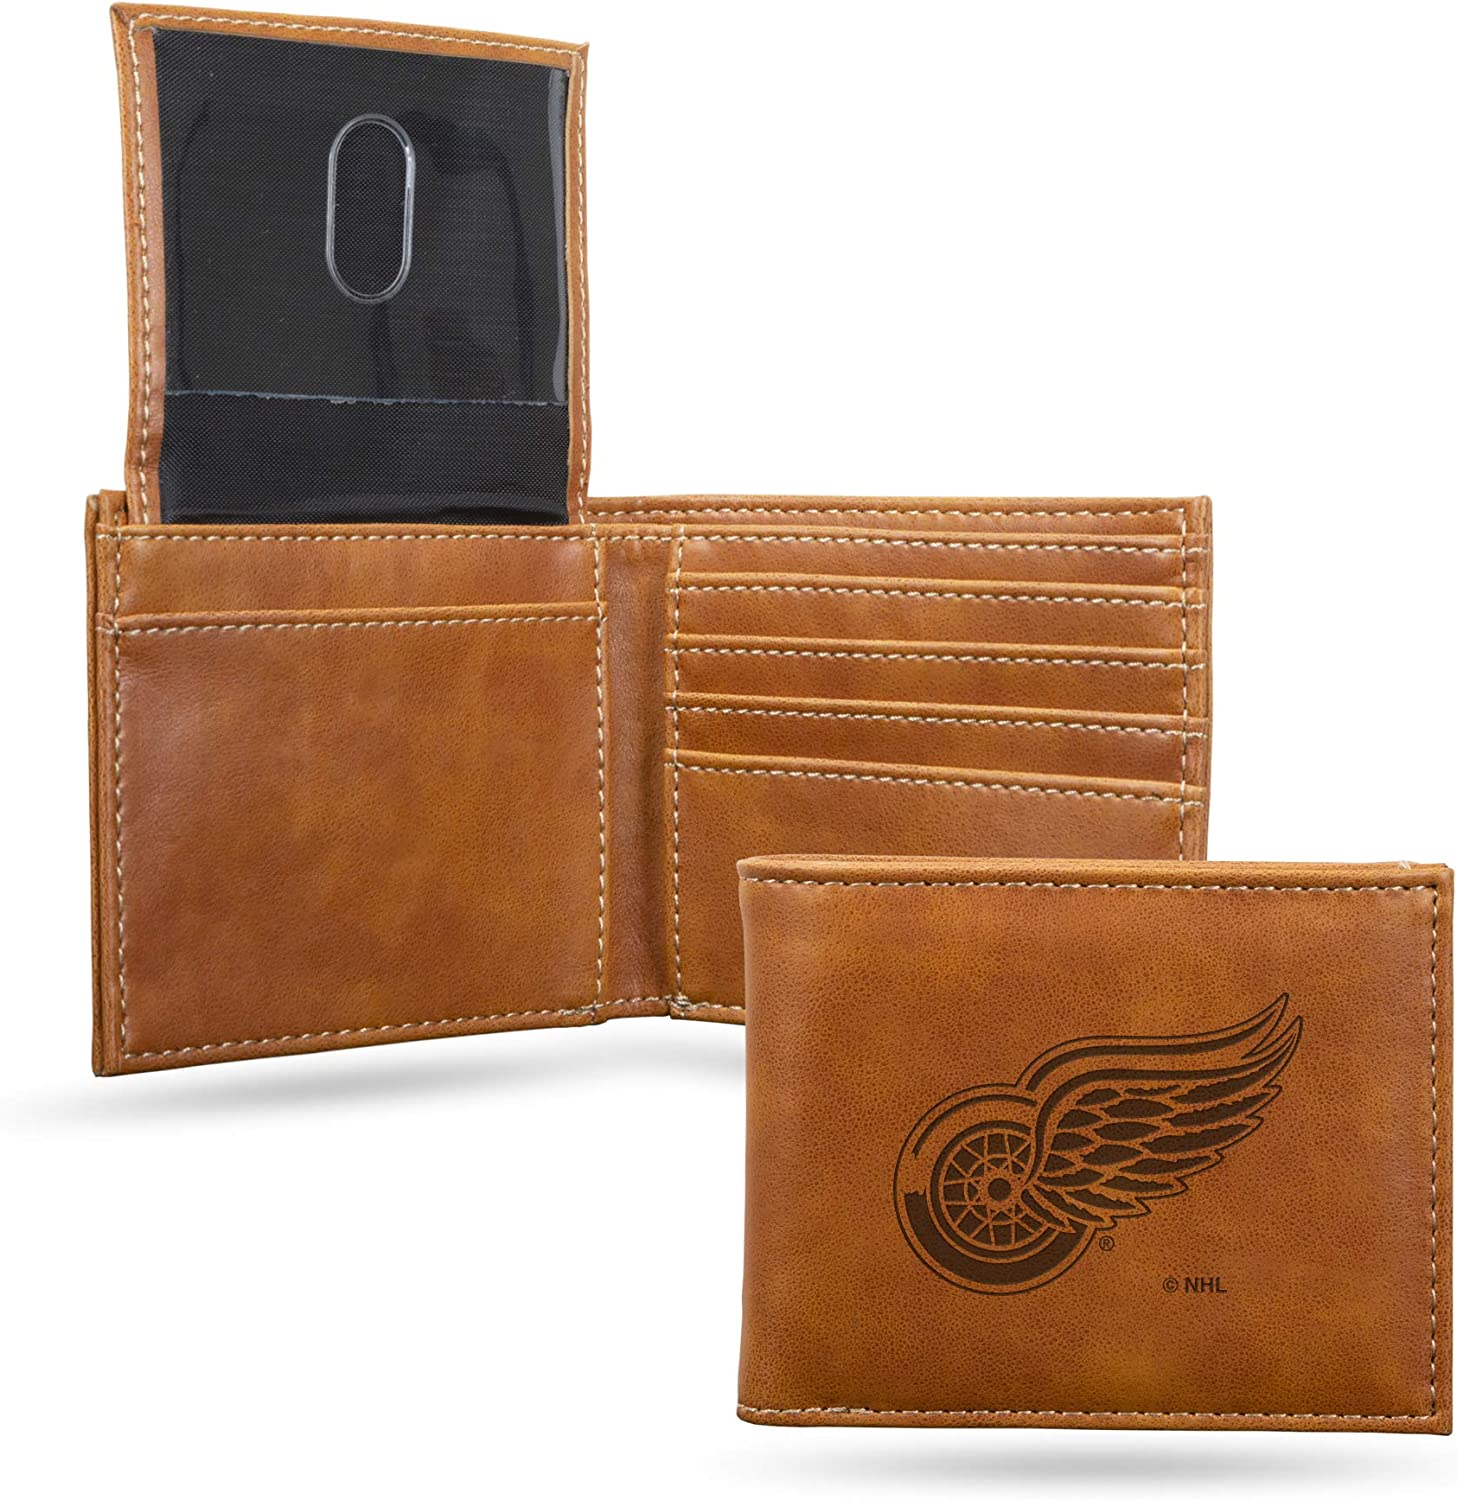 NHL Rico Industries Laser Engraved Billfold Wallet Detroit Red Wings